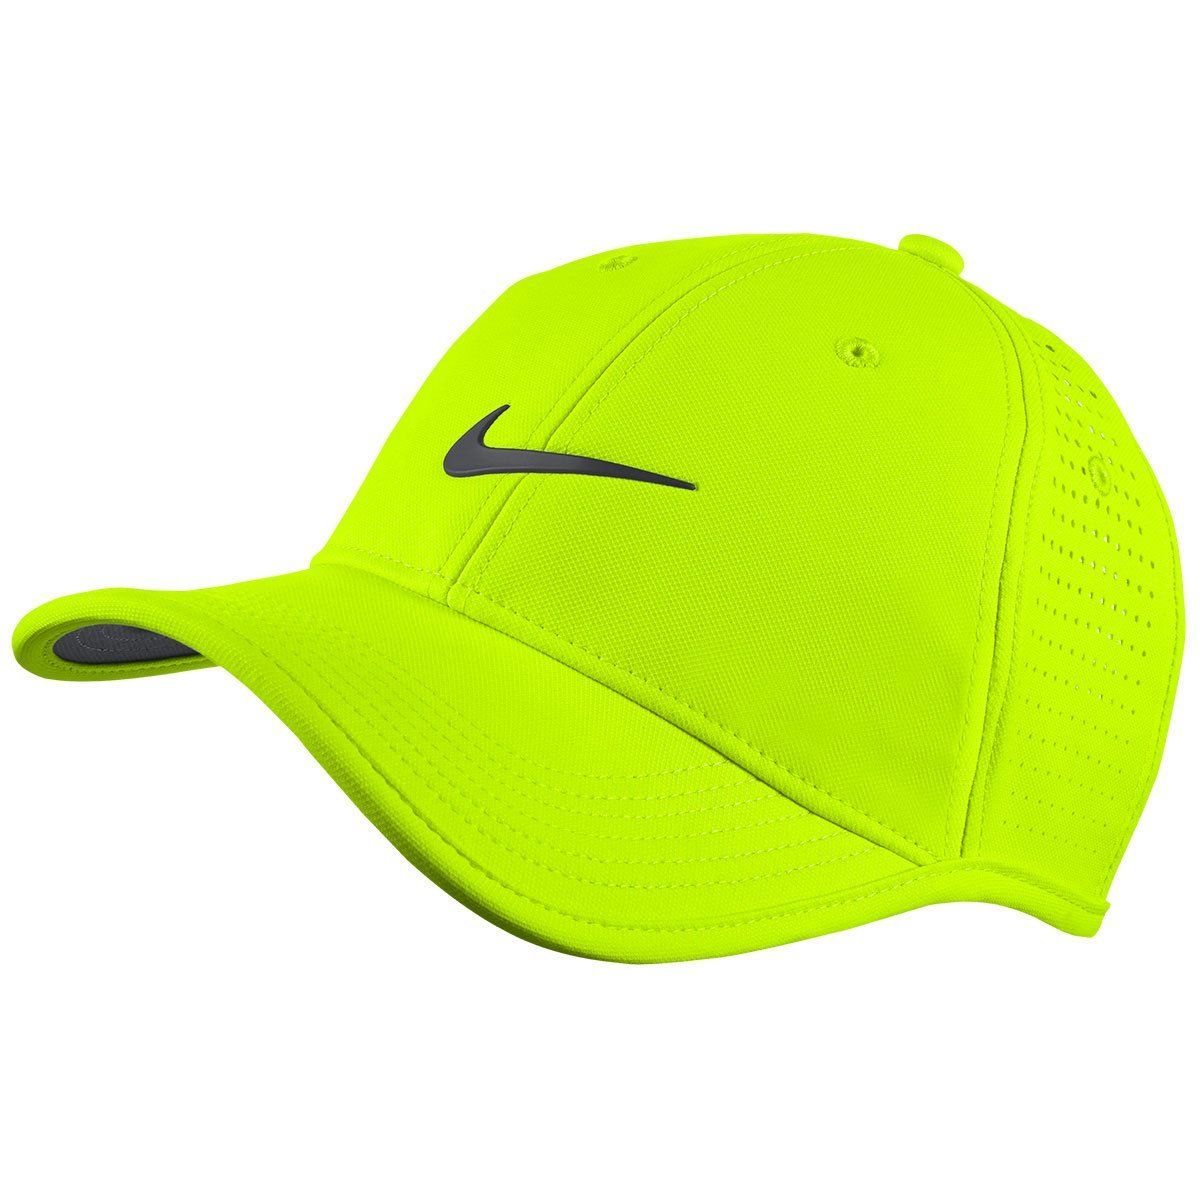 c02fc2ce5b2 Nike Golf 2016 Dri-Fit Ultralight Tour Perforated Adjustable Mens Golf Cap  Volt White